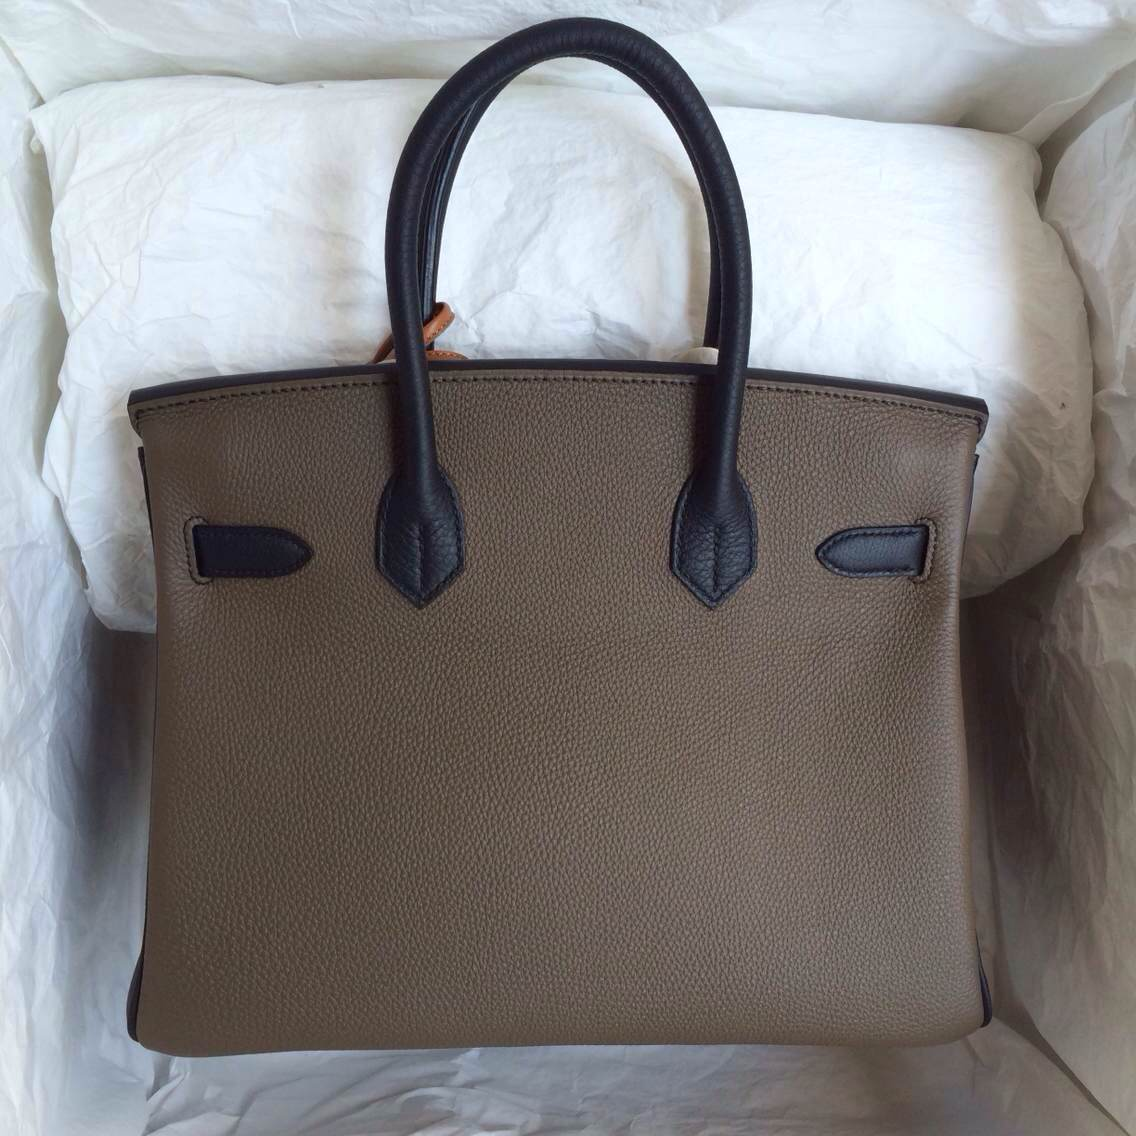 Wholesale Hand Stitching Hermes Birkin Bag 35cm C18 Etoupe Grey/89 Black Togo Leather